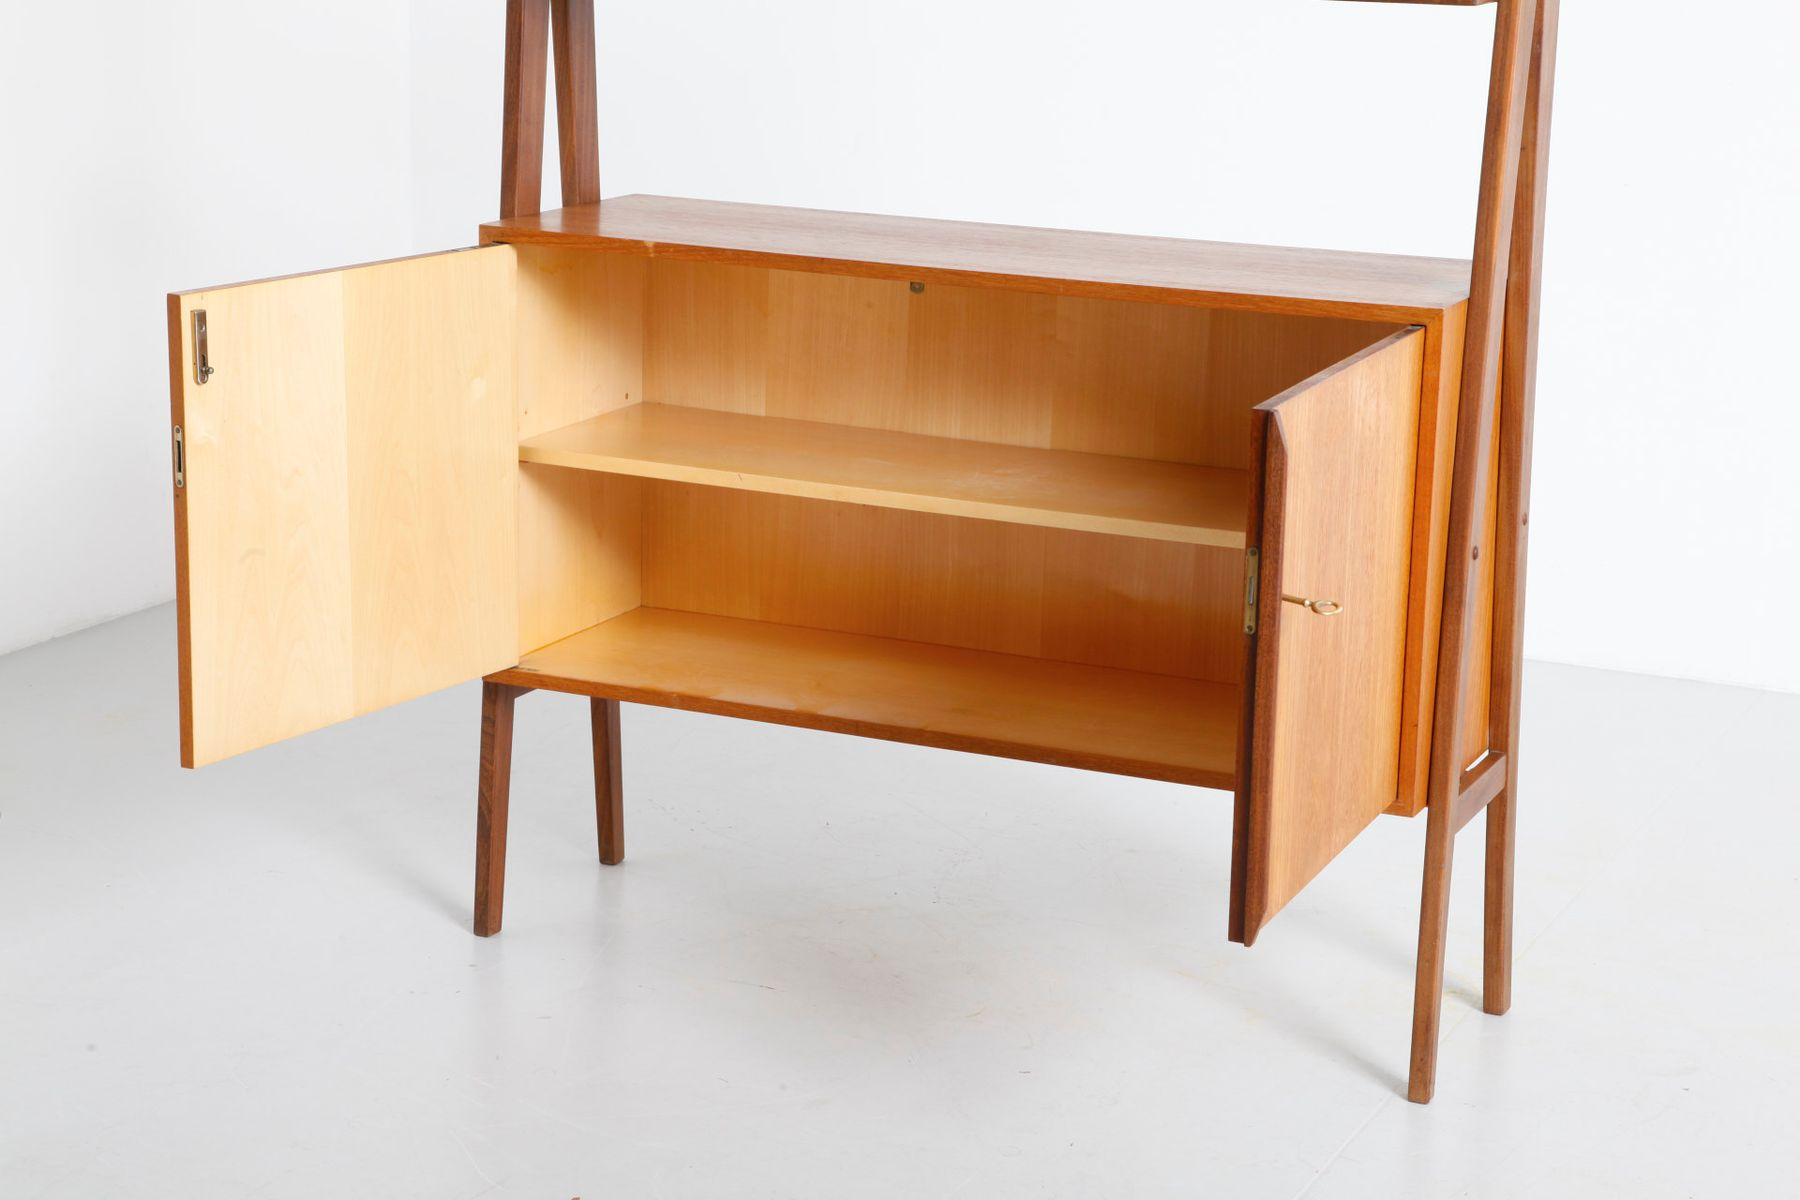 freistehendes mid century regal aus teak von wk m bel bei pamono kaufen. Black Bedroom Furniture Sets. Home Design Ideas